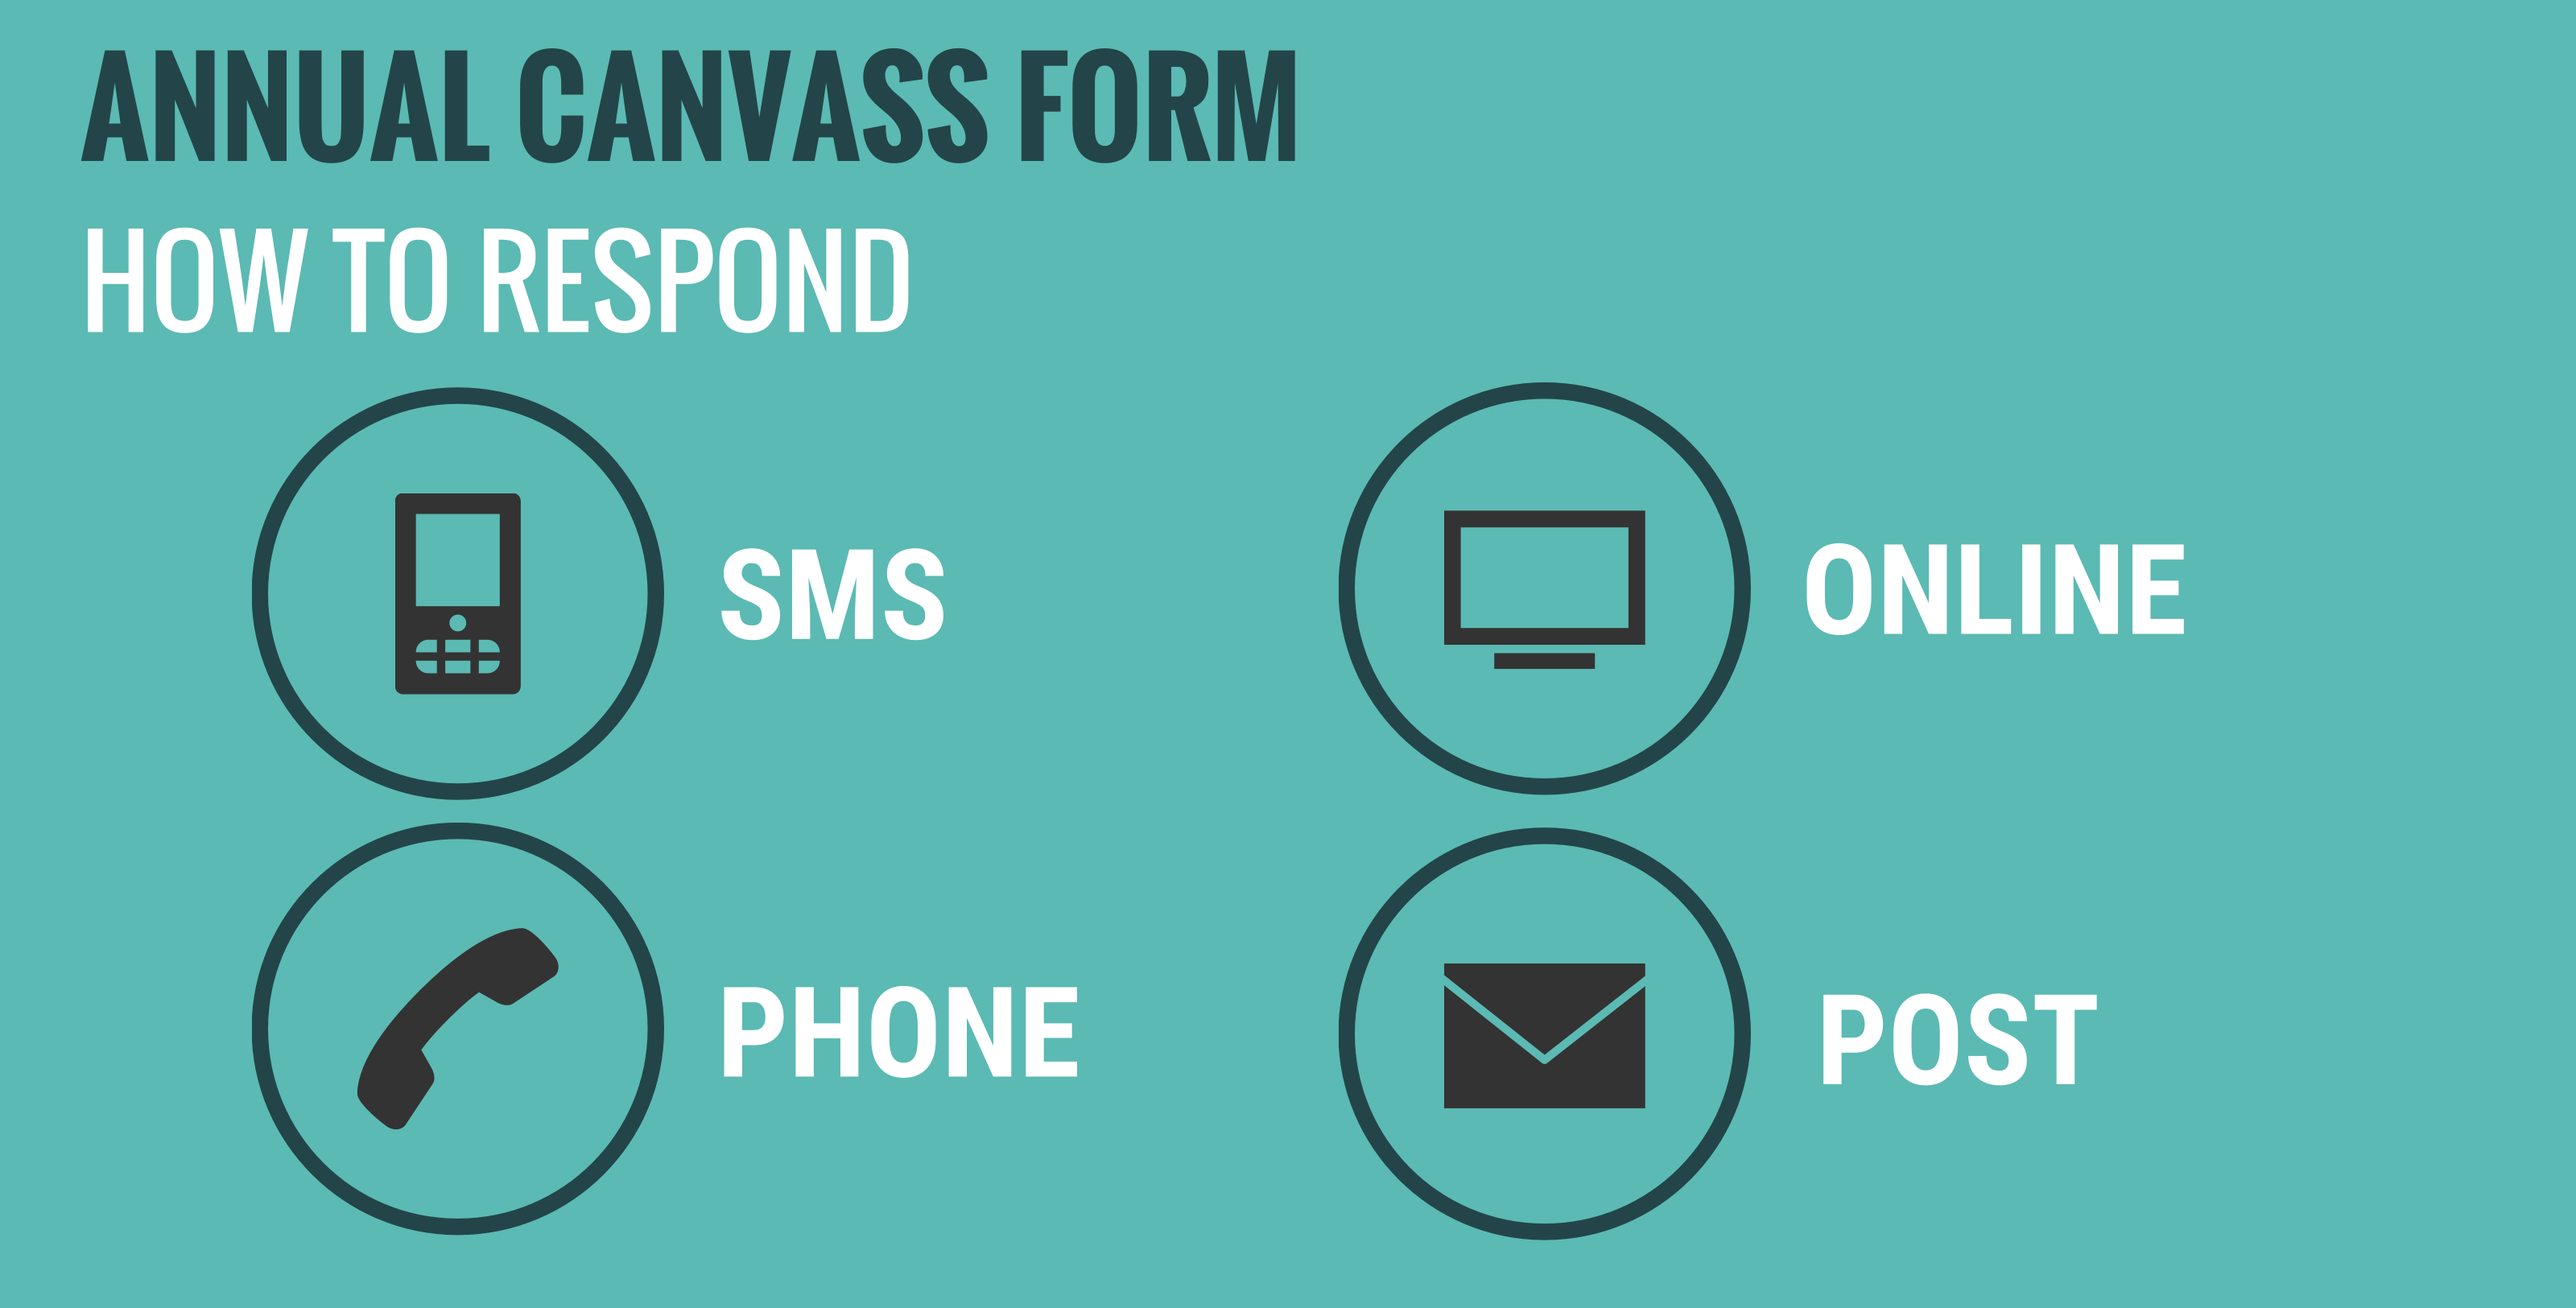 Graphic illustrating the four methods by which people can respond to the annual canvass - SMS, phone, online or post